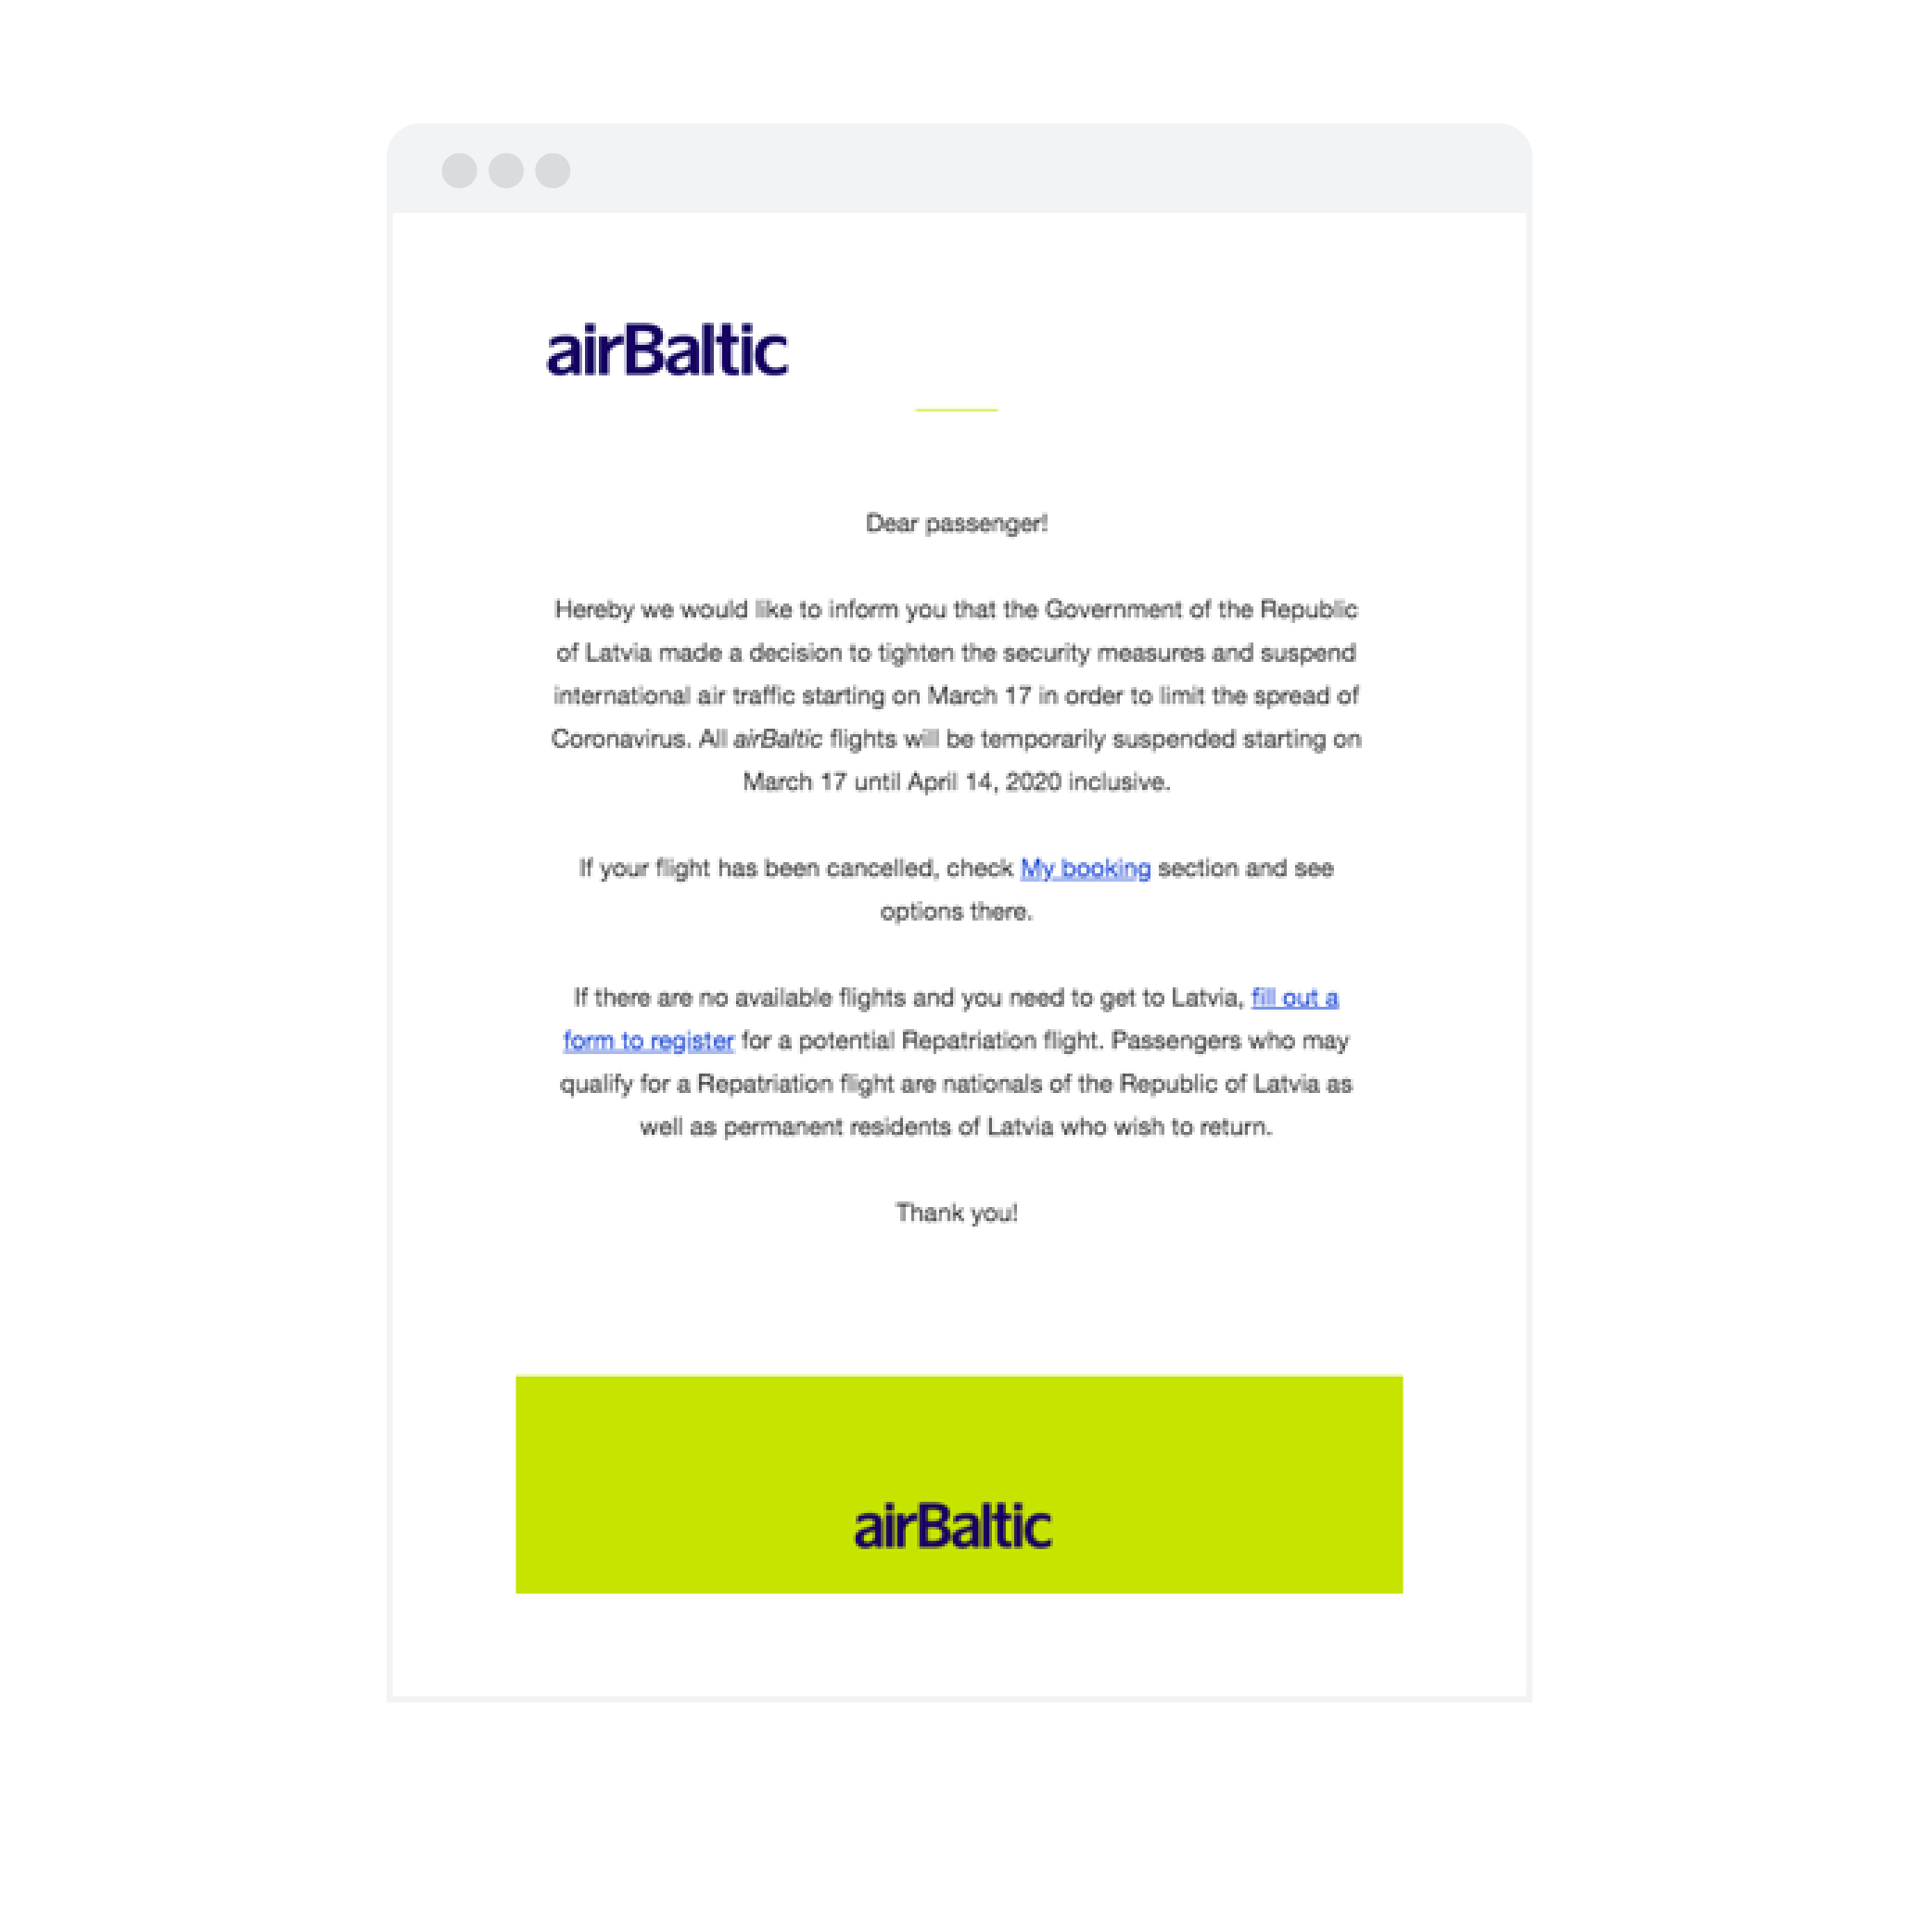 airBaltic cancellation email